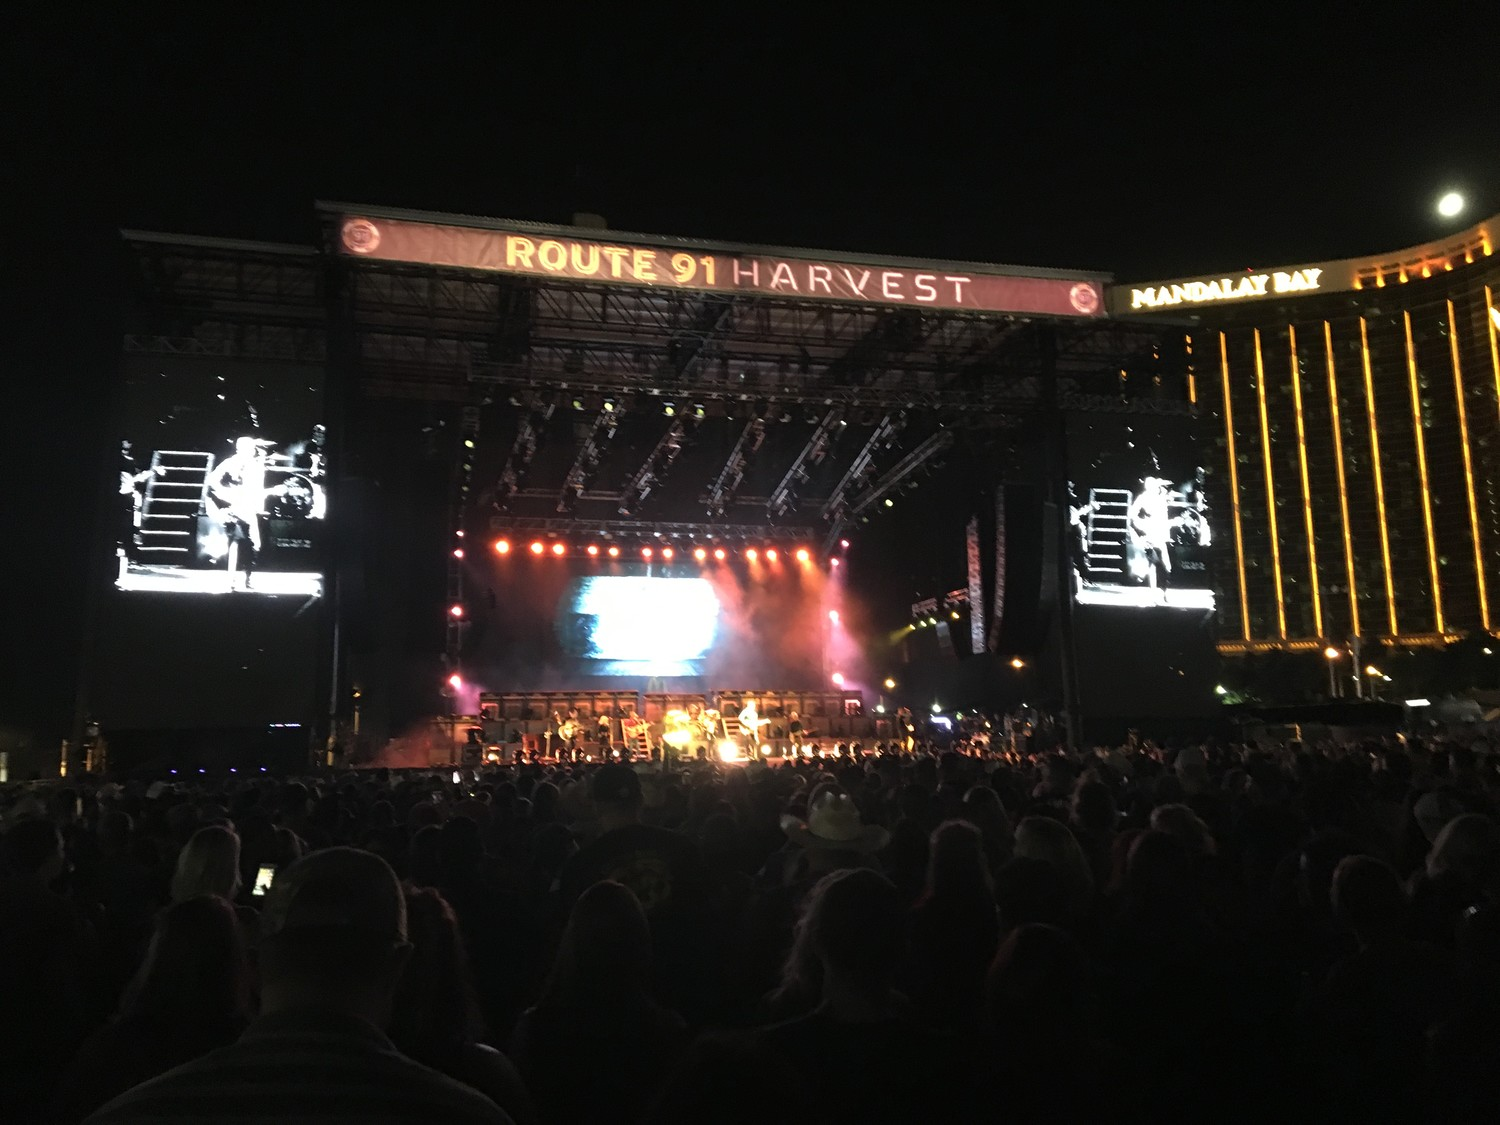 Country music star Jason Aldean's performance at the Route 91 Harvest Festival in Las Vegas on Sunday night became the scene of the deadliest mass shooting in U.S. history. In the crowd was 24-year-old Rockville Centre native Peter Meehan. Above, the concert venue last Friday.